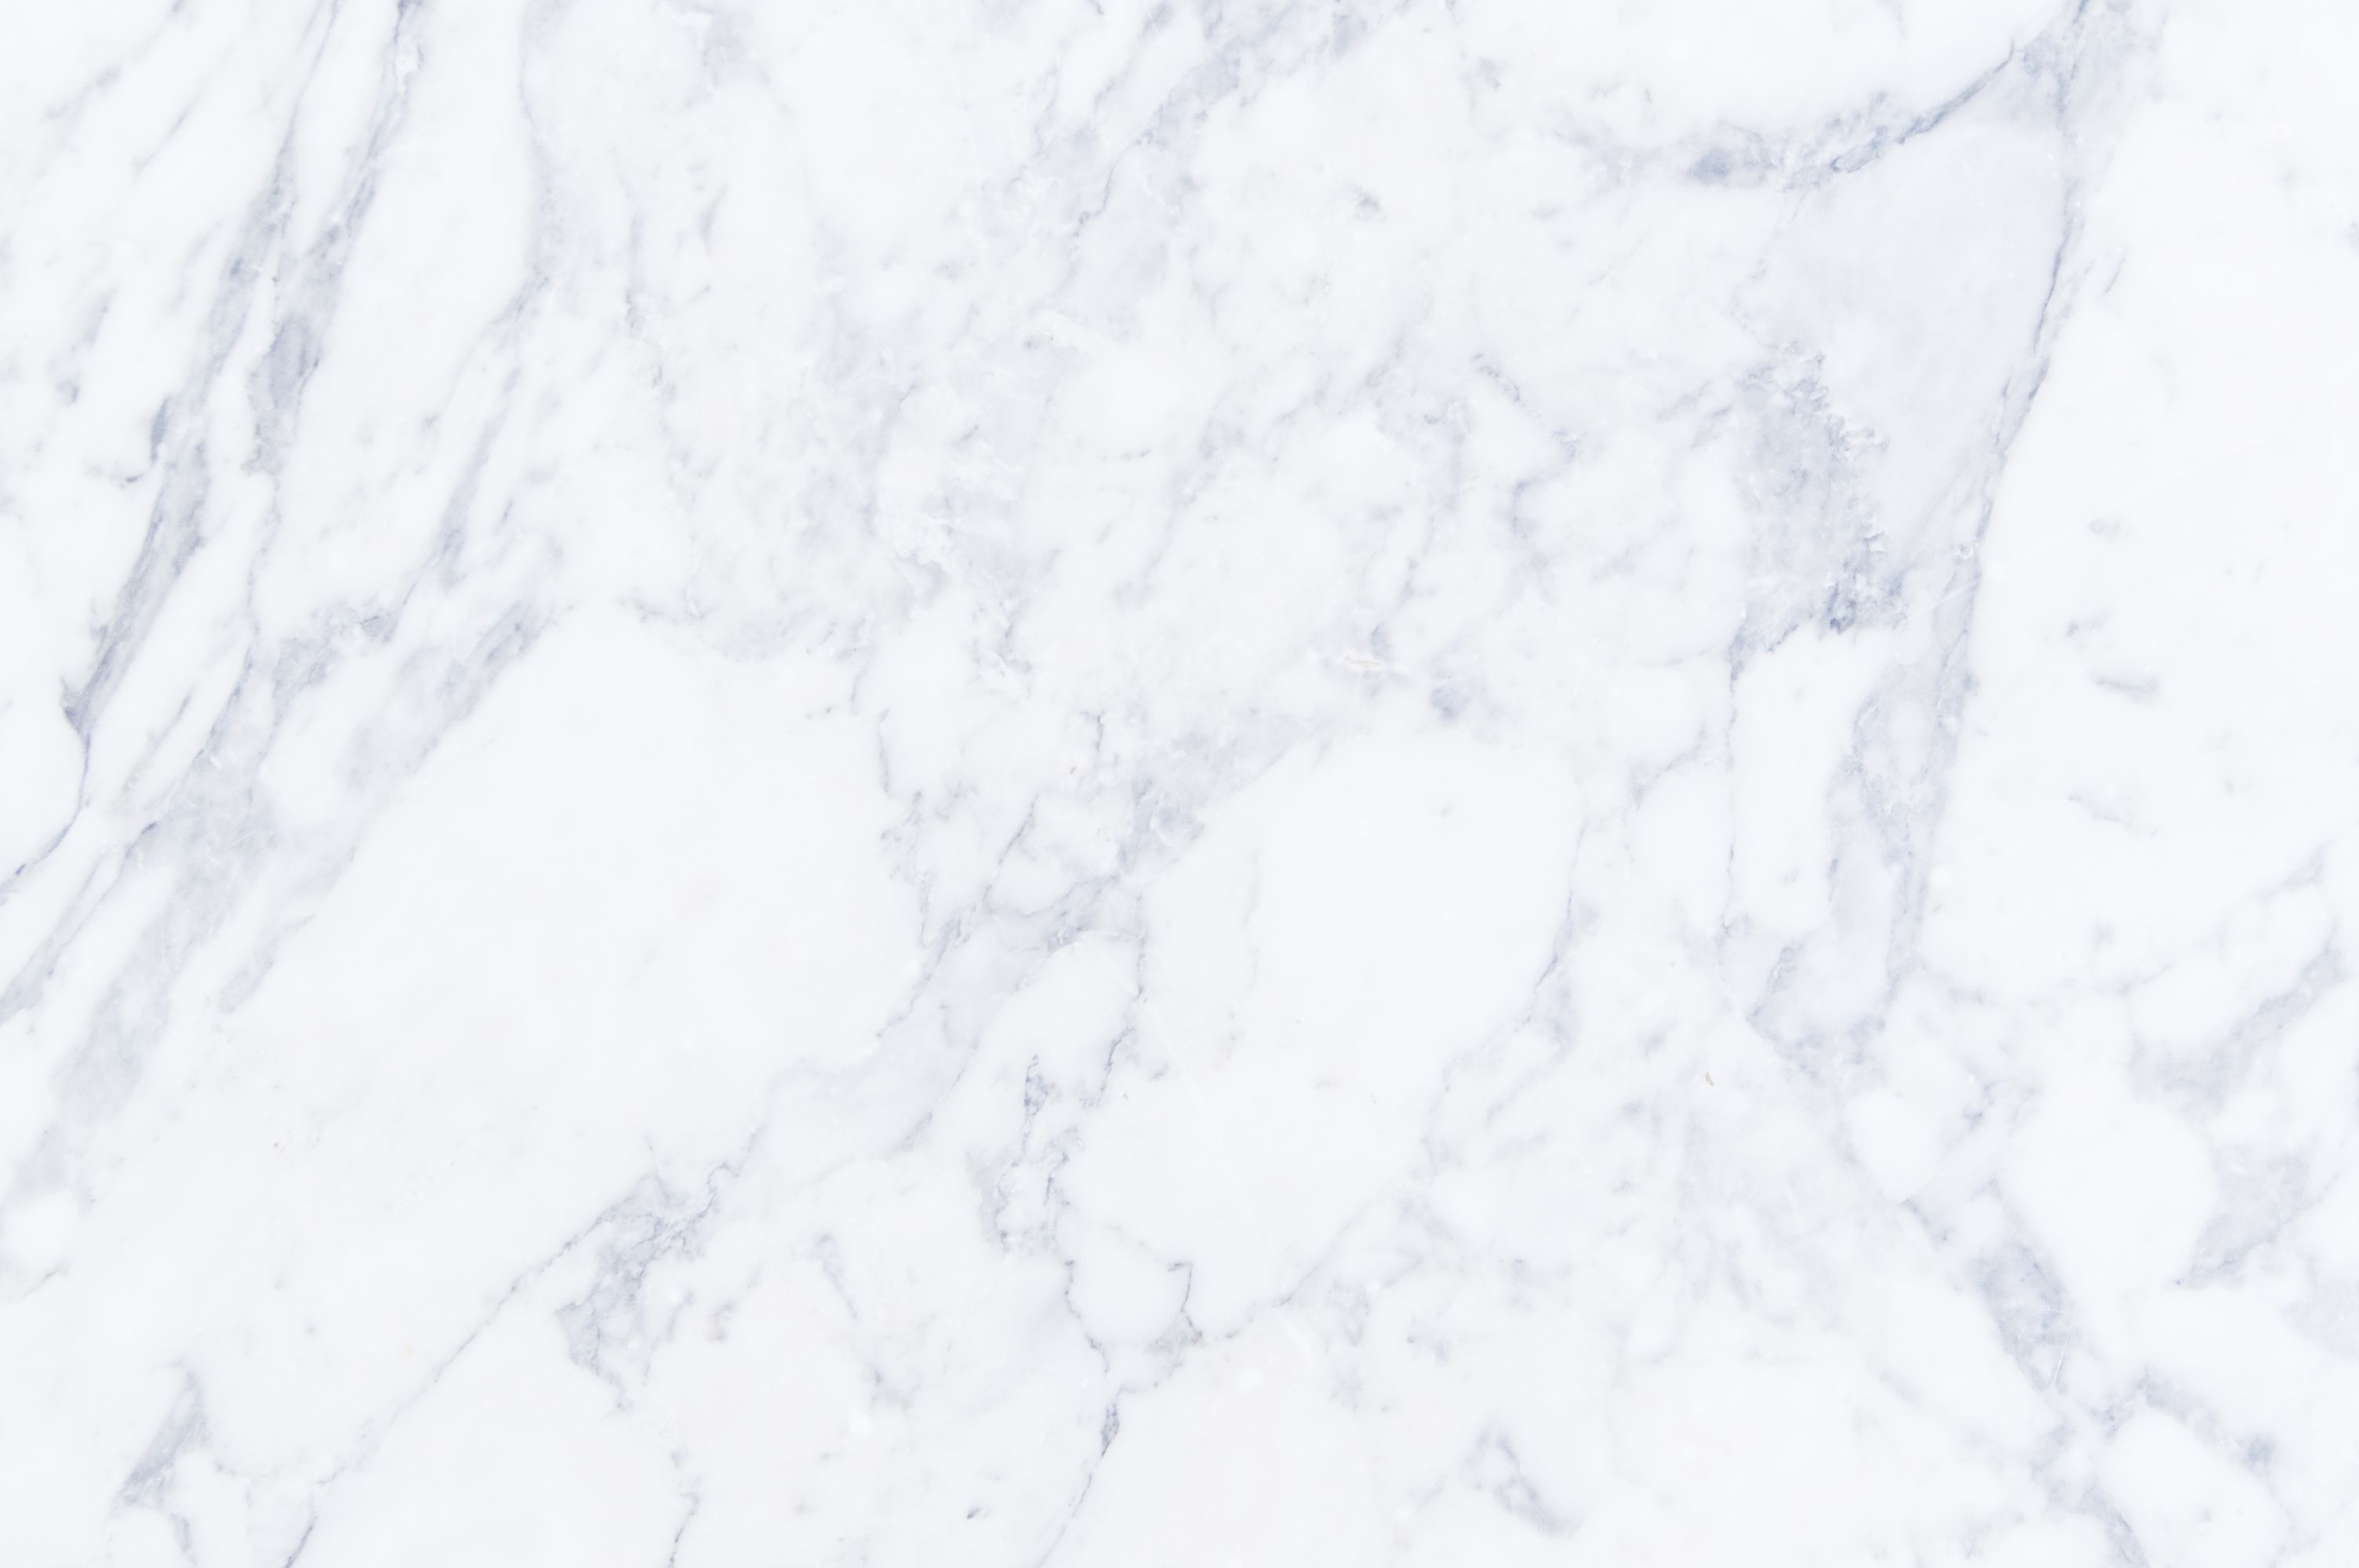 marble wallpaper #pretty #desktop #wallpaper #marble | new | pinterest